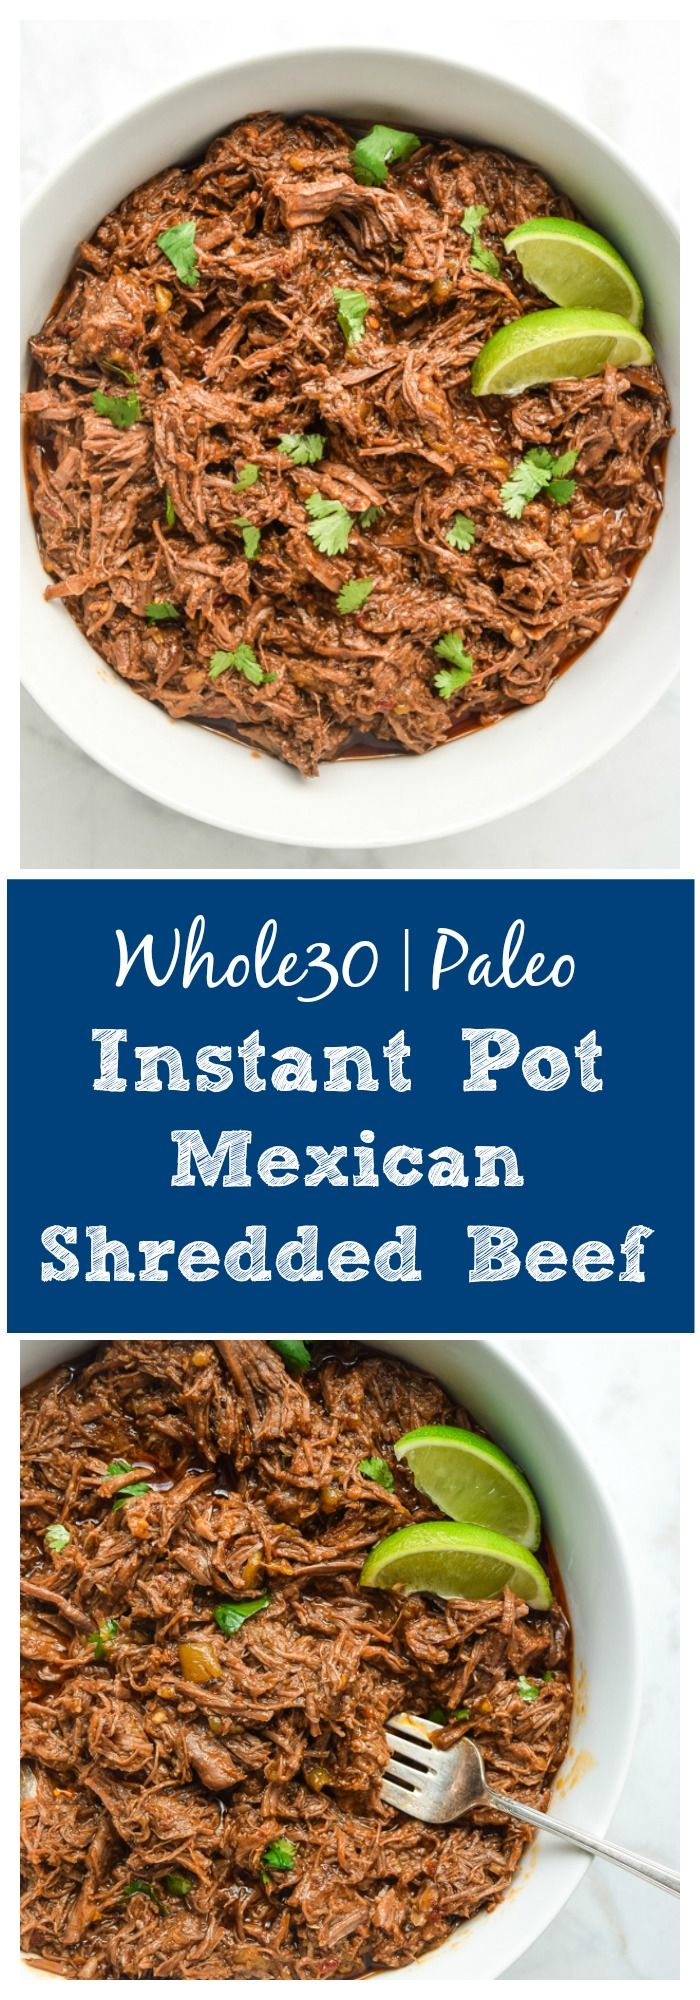 Instant Pot Shredded Mexican Beef (Whole30 Paleo) - this recipe is huge on flavor and super family friendly!  Add to tacos, salads, burrito bowls, and more.  Freezes great too! | tastythin.com